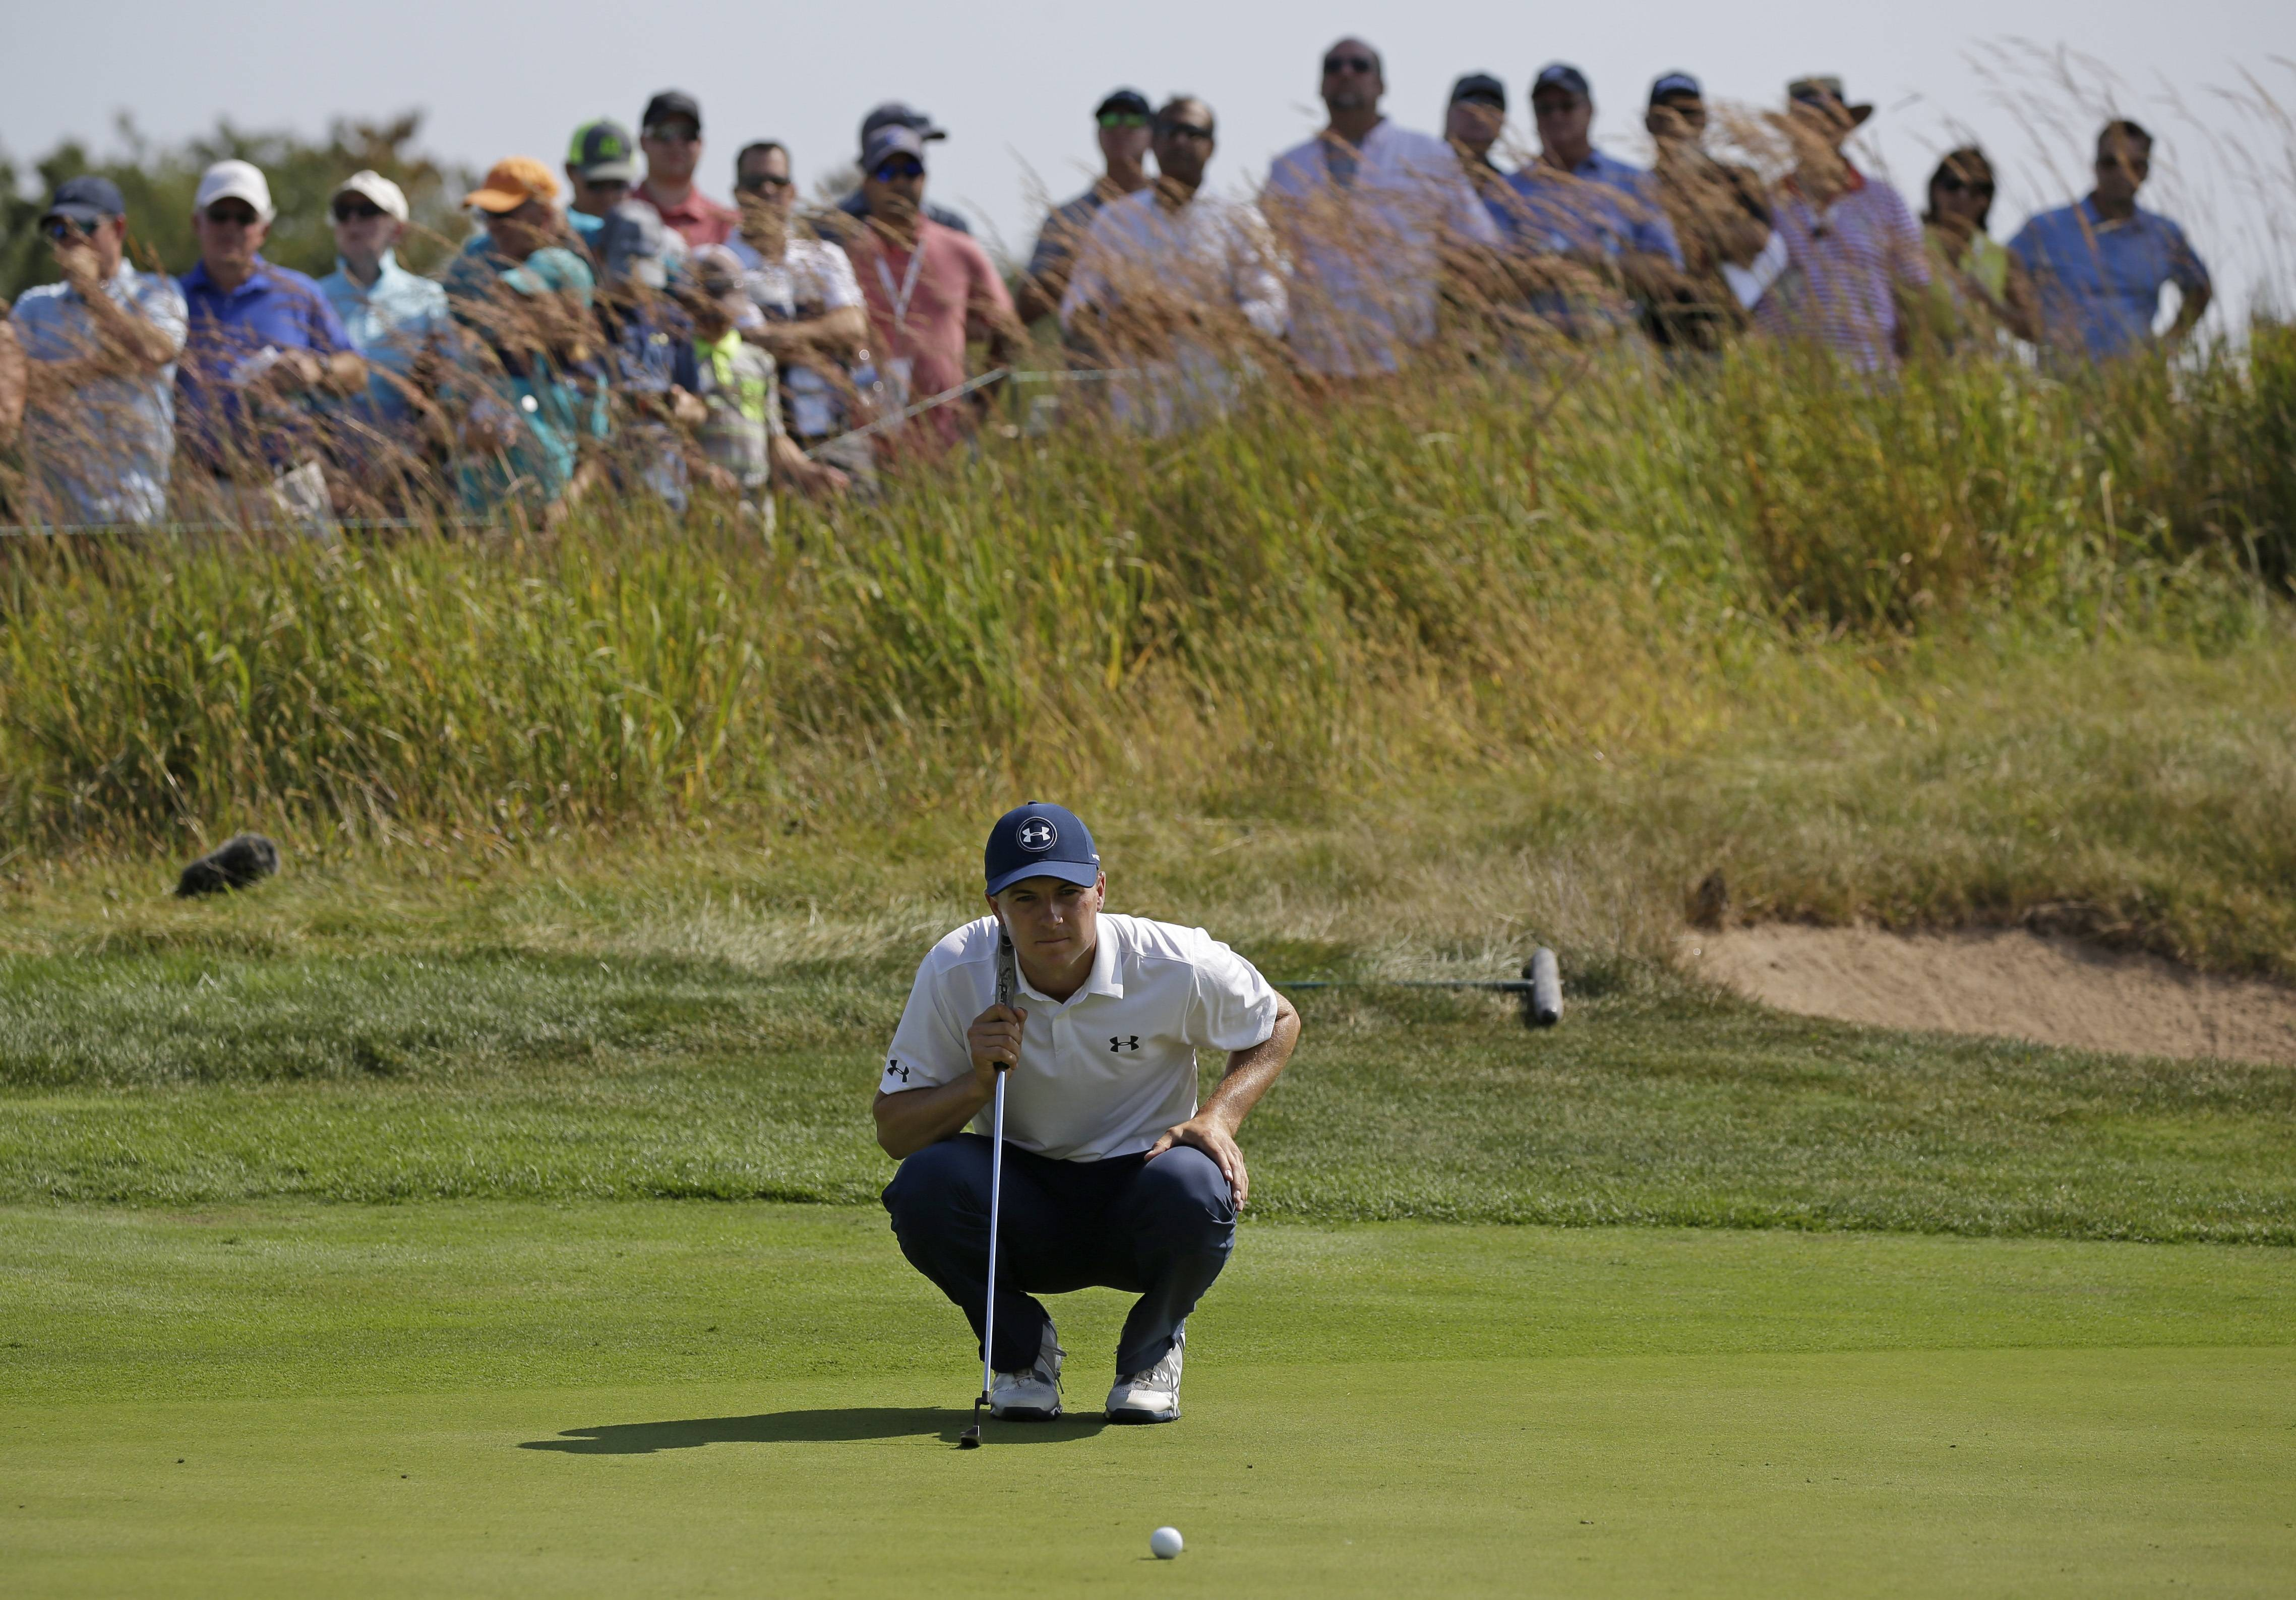 Jordan Spieth reads the green before his putt on the third hole during the second round of the BMW Championship golf tournament at Conway Farms Golf Club, Friday, Sept. 15, 2017, in Lake Forest, Ill. (AP Photo/Nam Y. Huh)